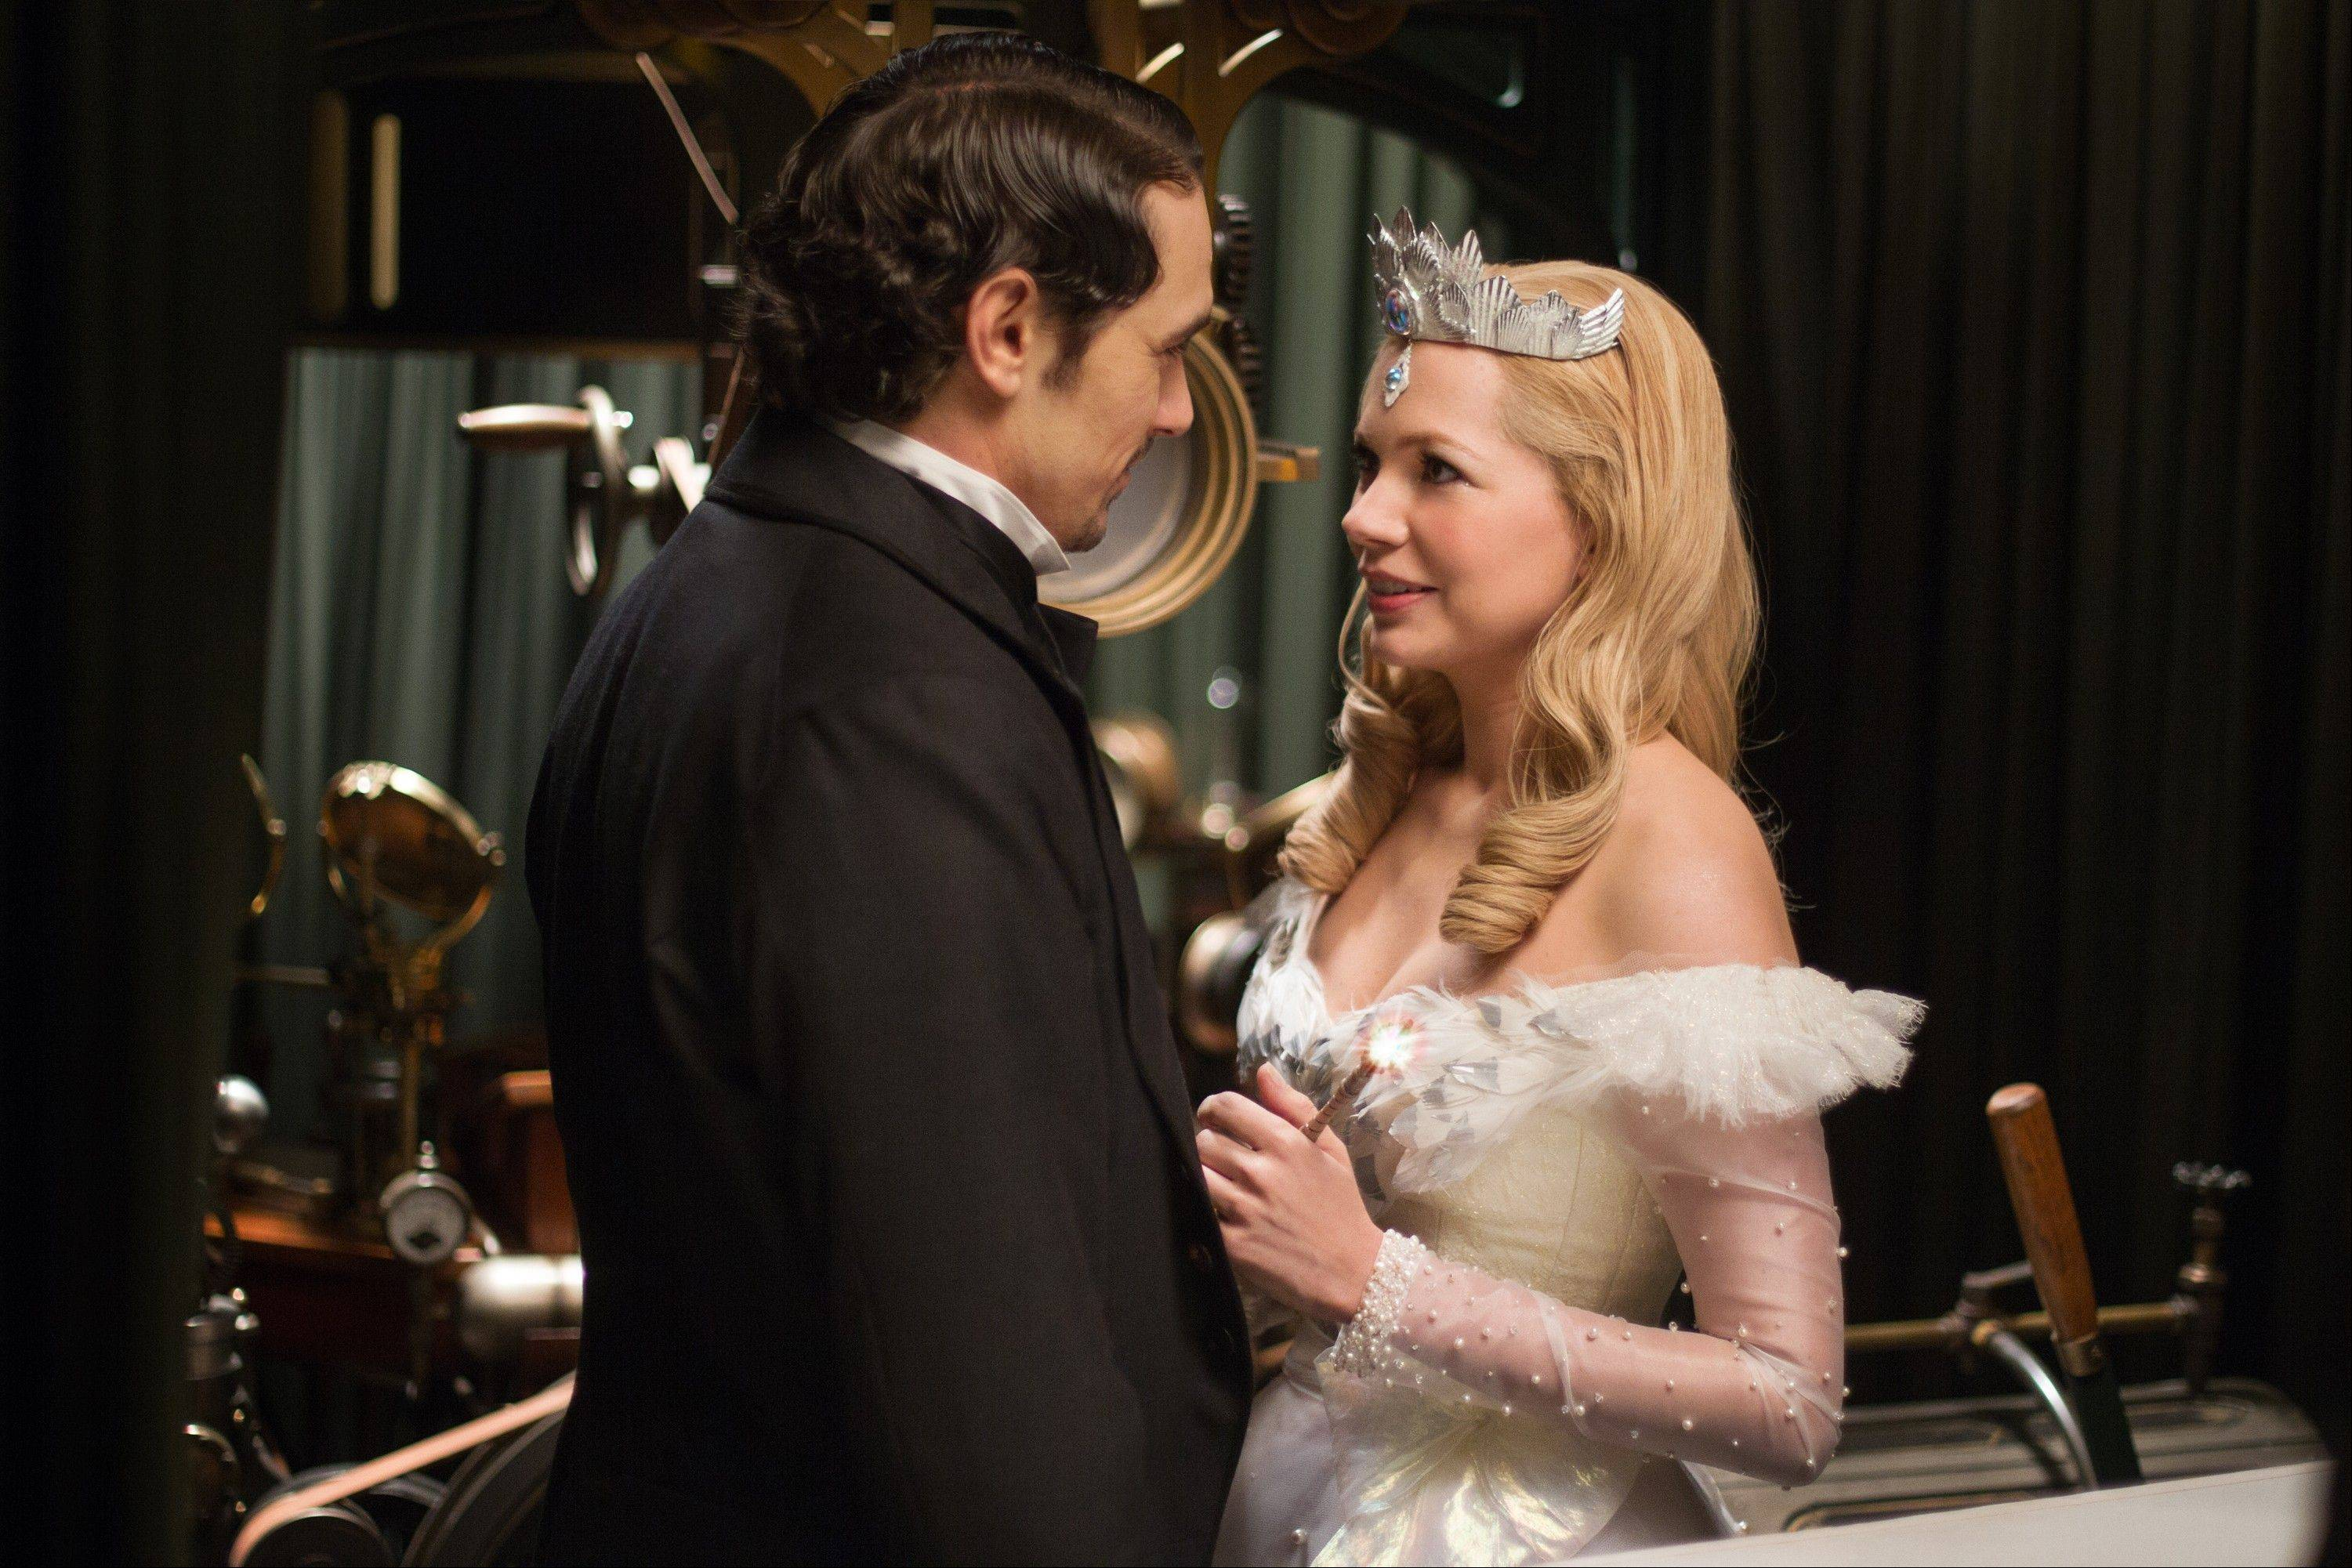 This film image released by Disney Enterprises shows James Franco, left, and Michelle Williams in a scene from �Oz the Great and Powerful.�